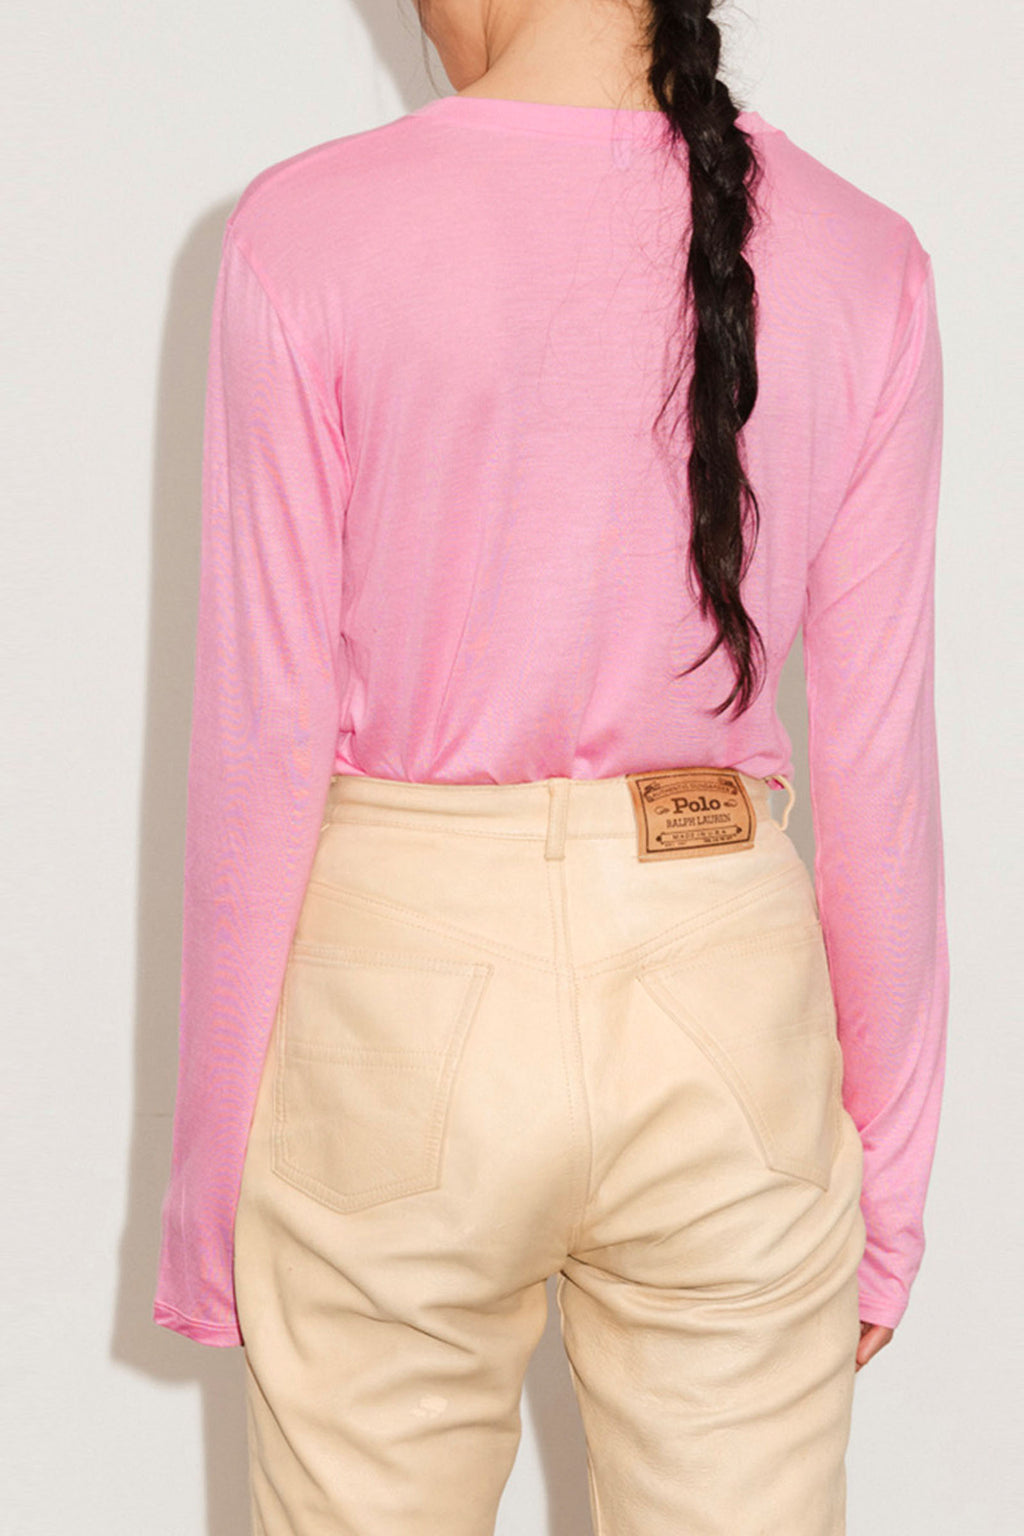 Base Range Long Sleeve Tee-Bamboo Jersey In Hane Pink